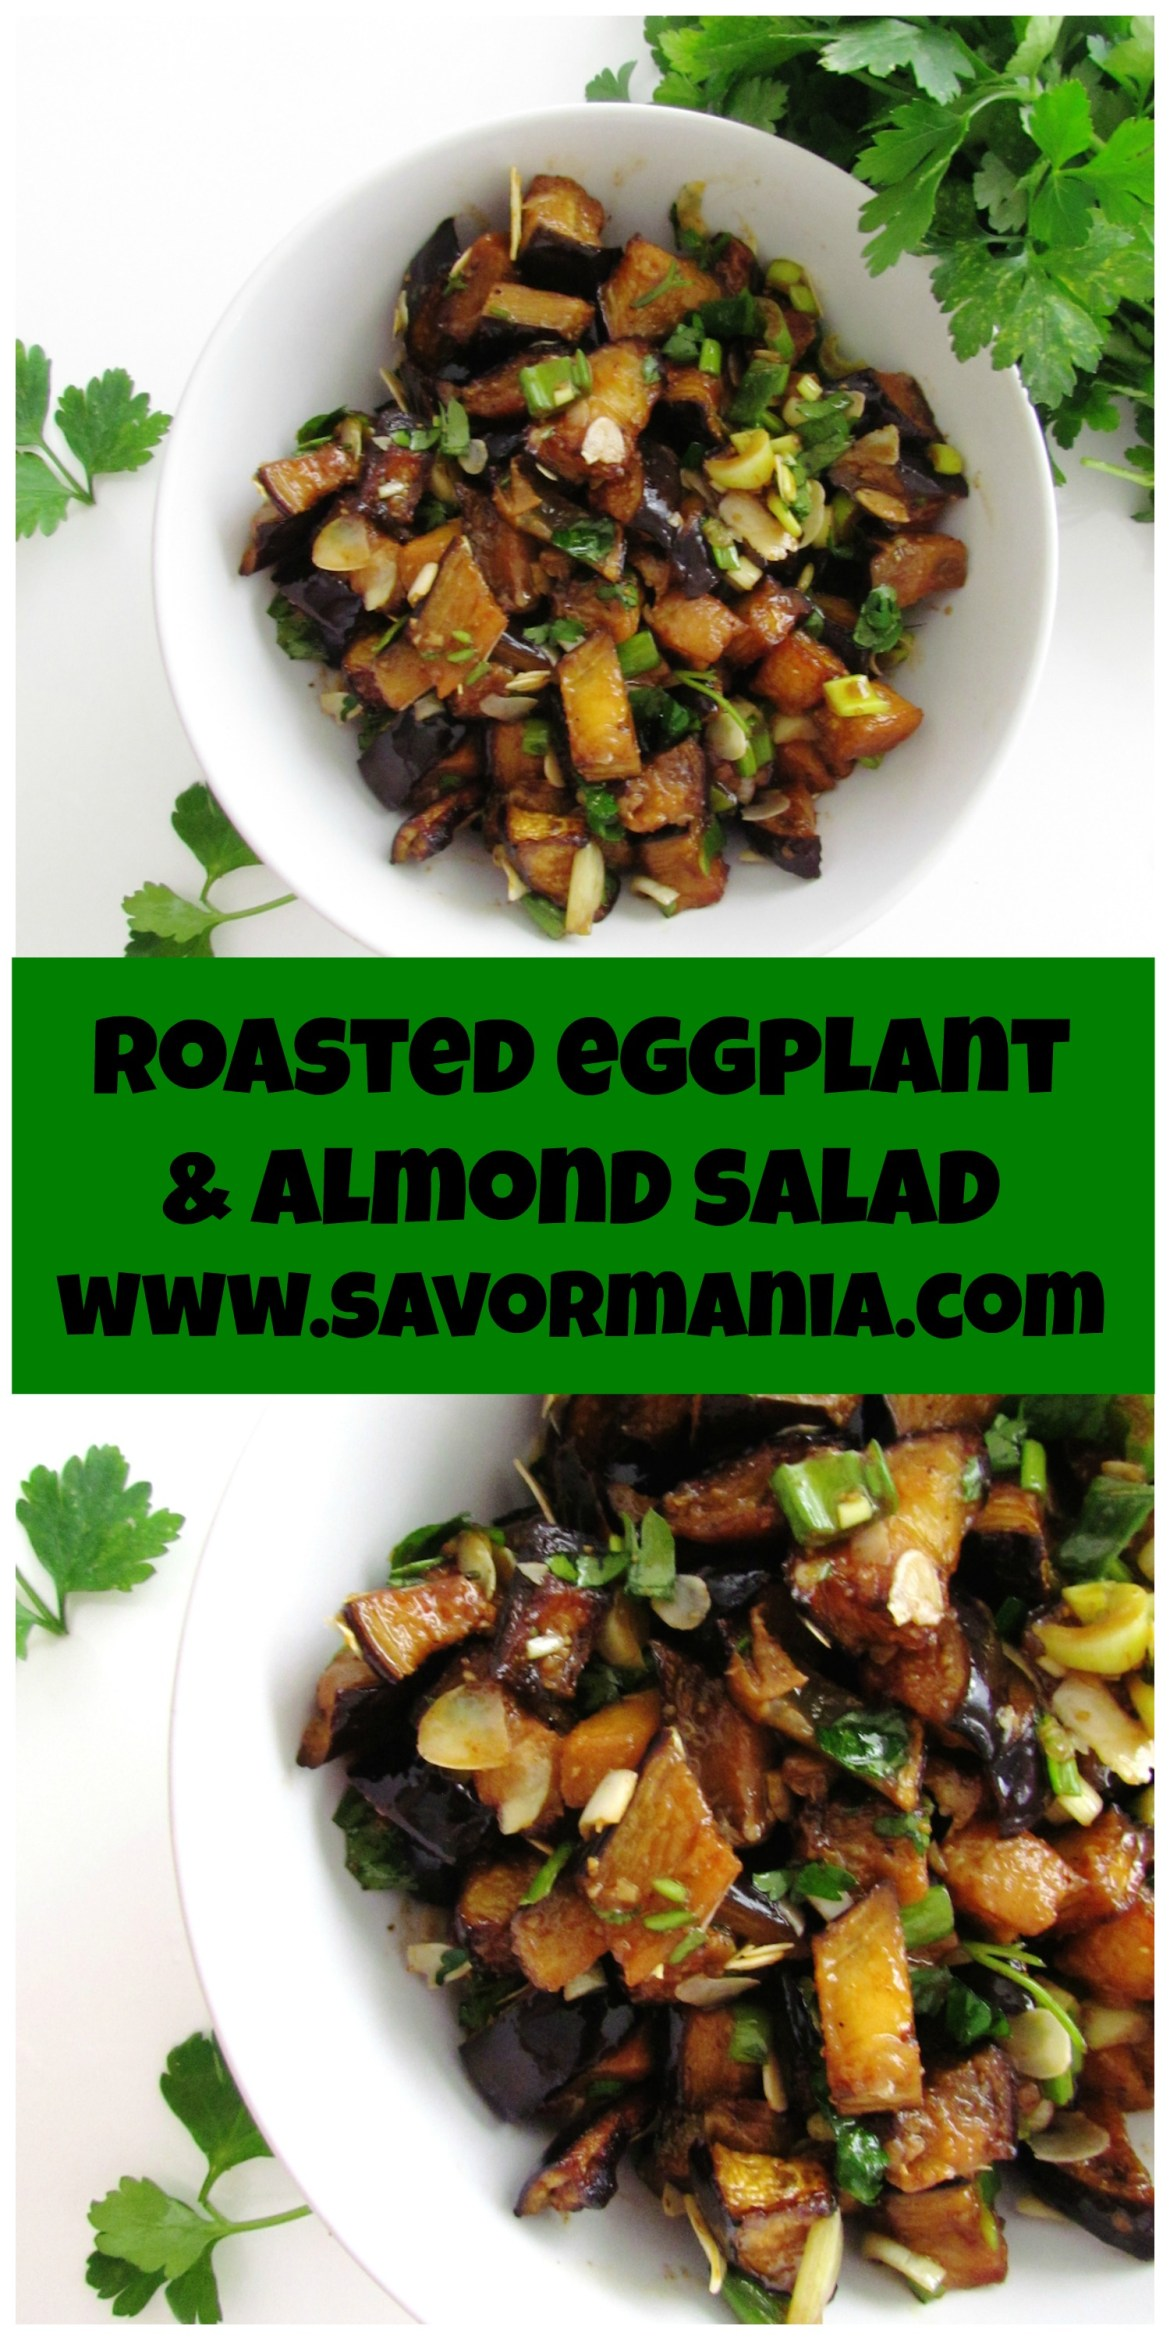 roasted eggplant almond salad | www.savormania.com